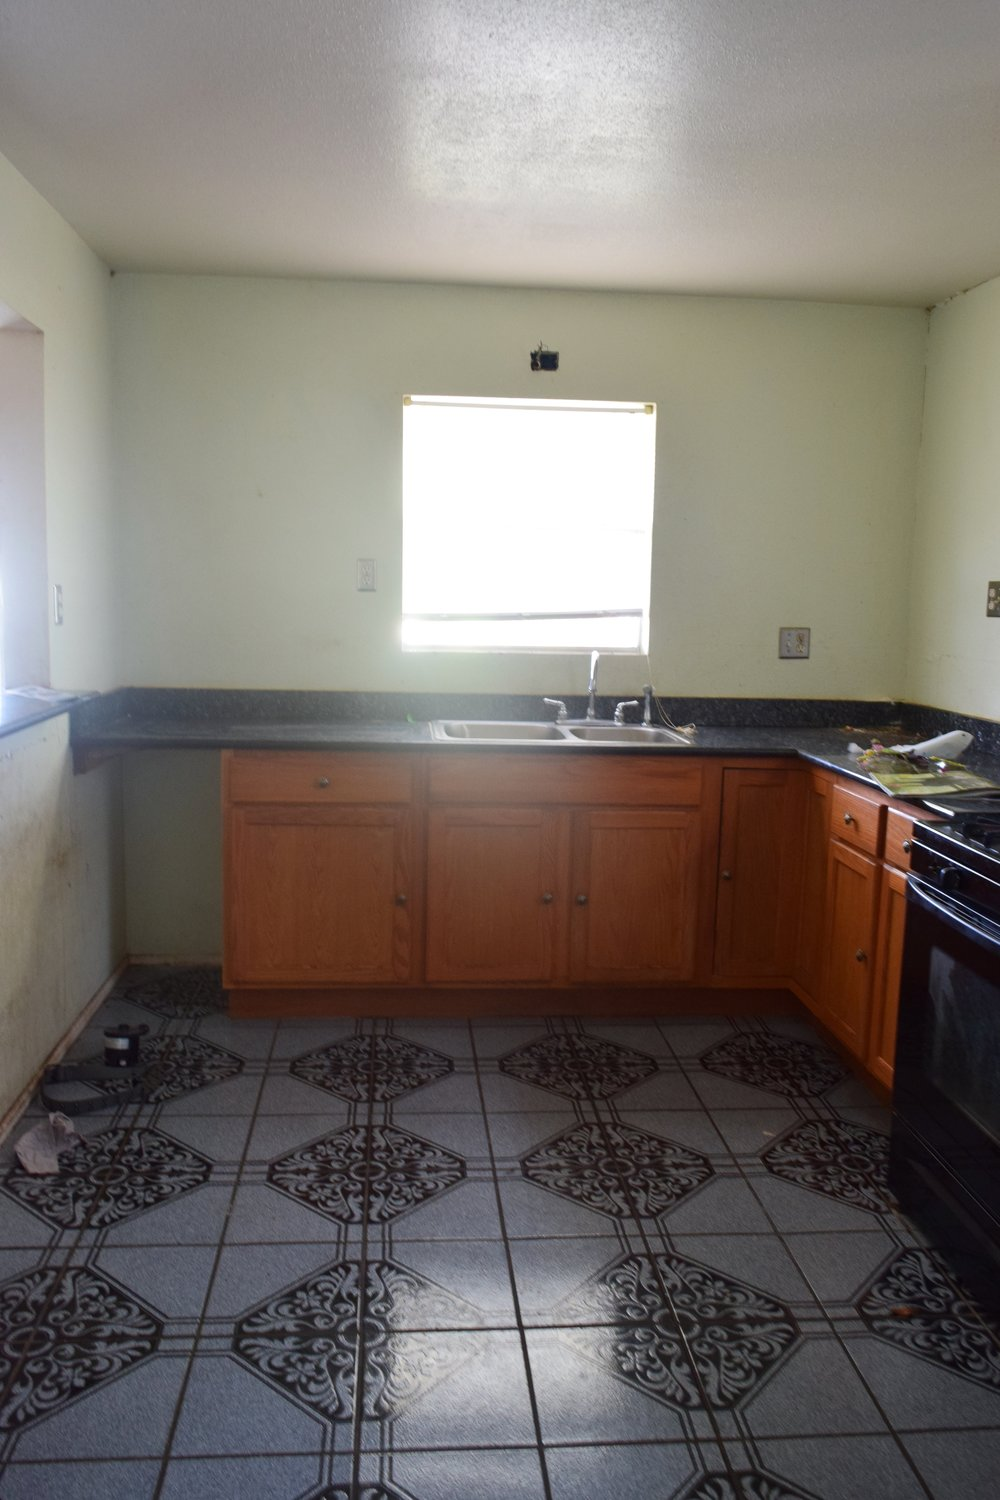 tiny-rehab-kitchen-before-1.jpg